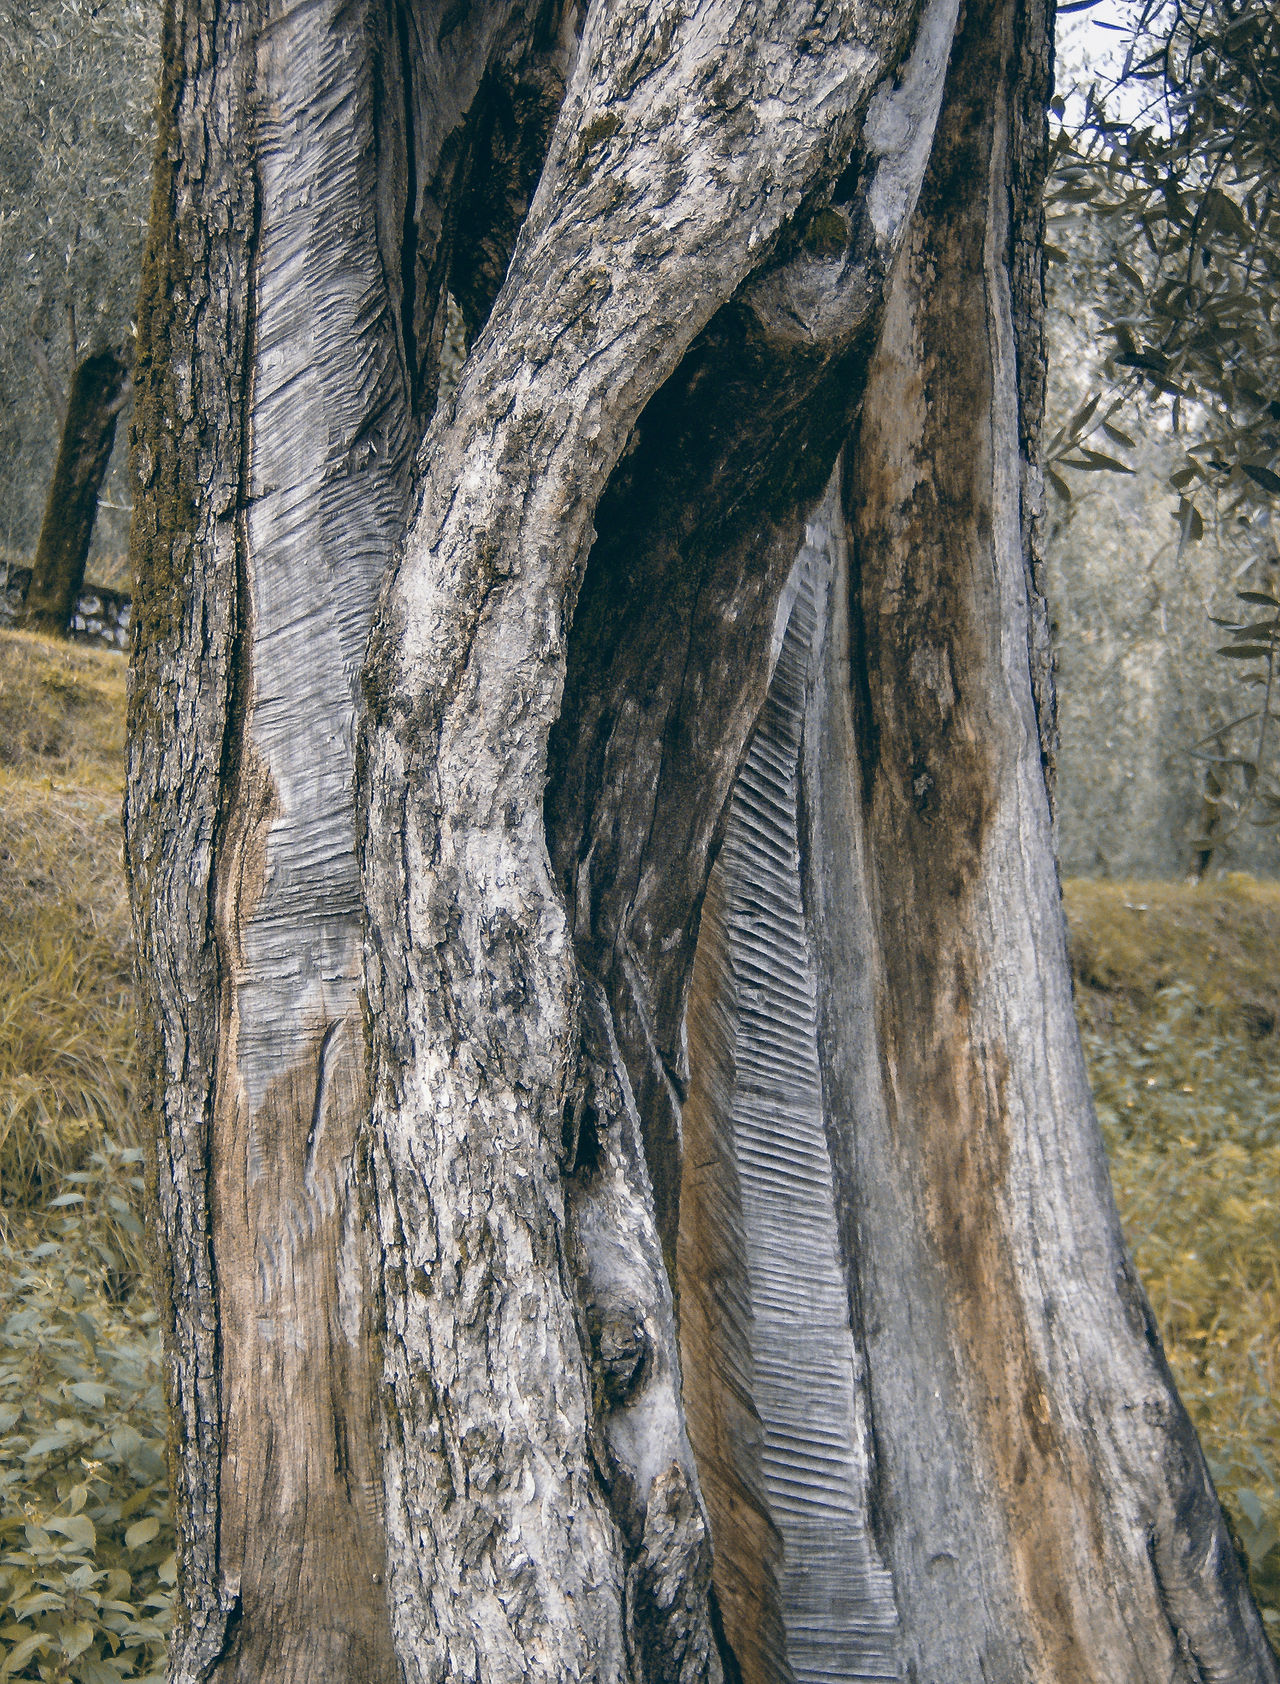 italia Baumstamm Beauty In Nature Close-up Day Italia Italie Italien Italy Italy❤️ Italy🇮🇹 Landscape Nature Nature No People Oil Tree Olivenbaum Outdoors Sky Tranquility Tree Tree Tree Trunk Tronco Trunk Ulivo